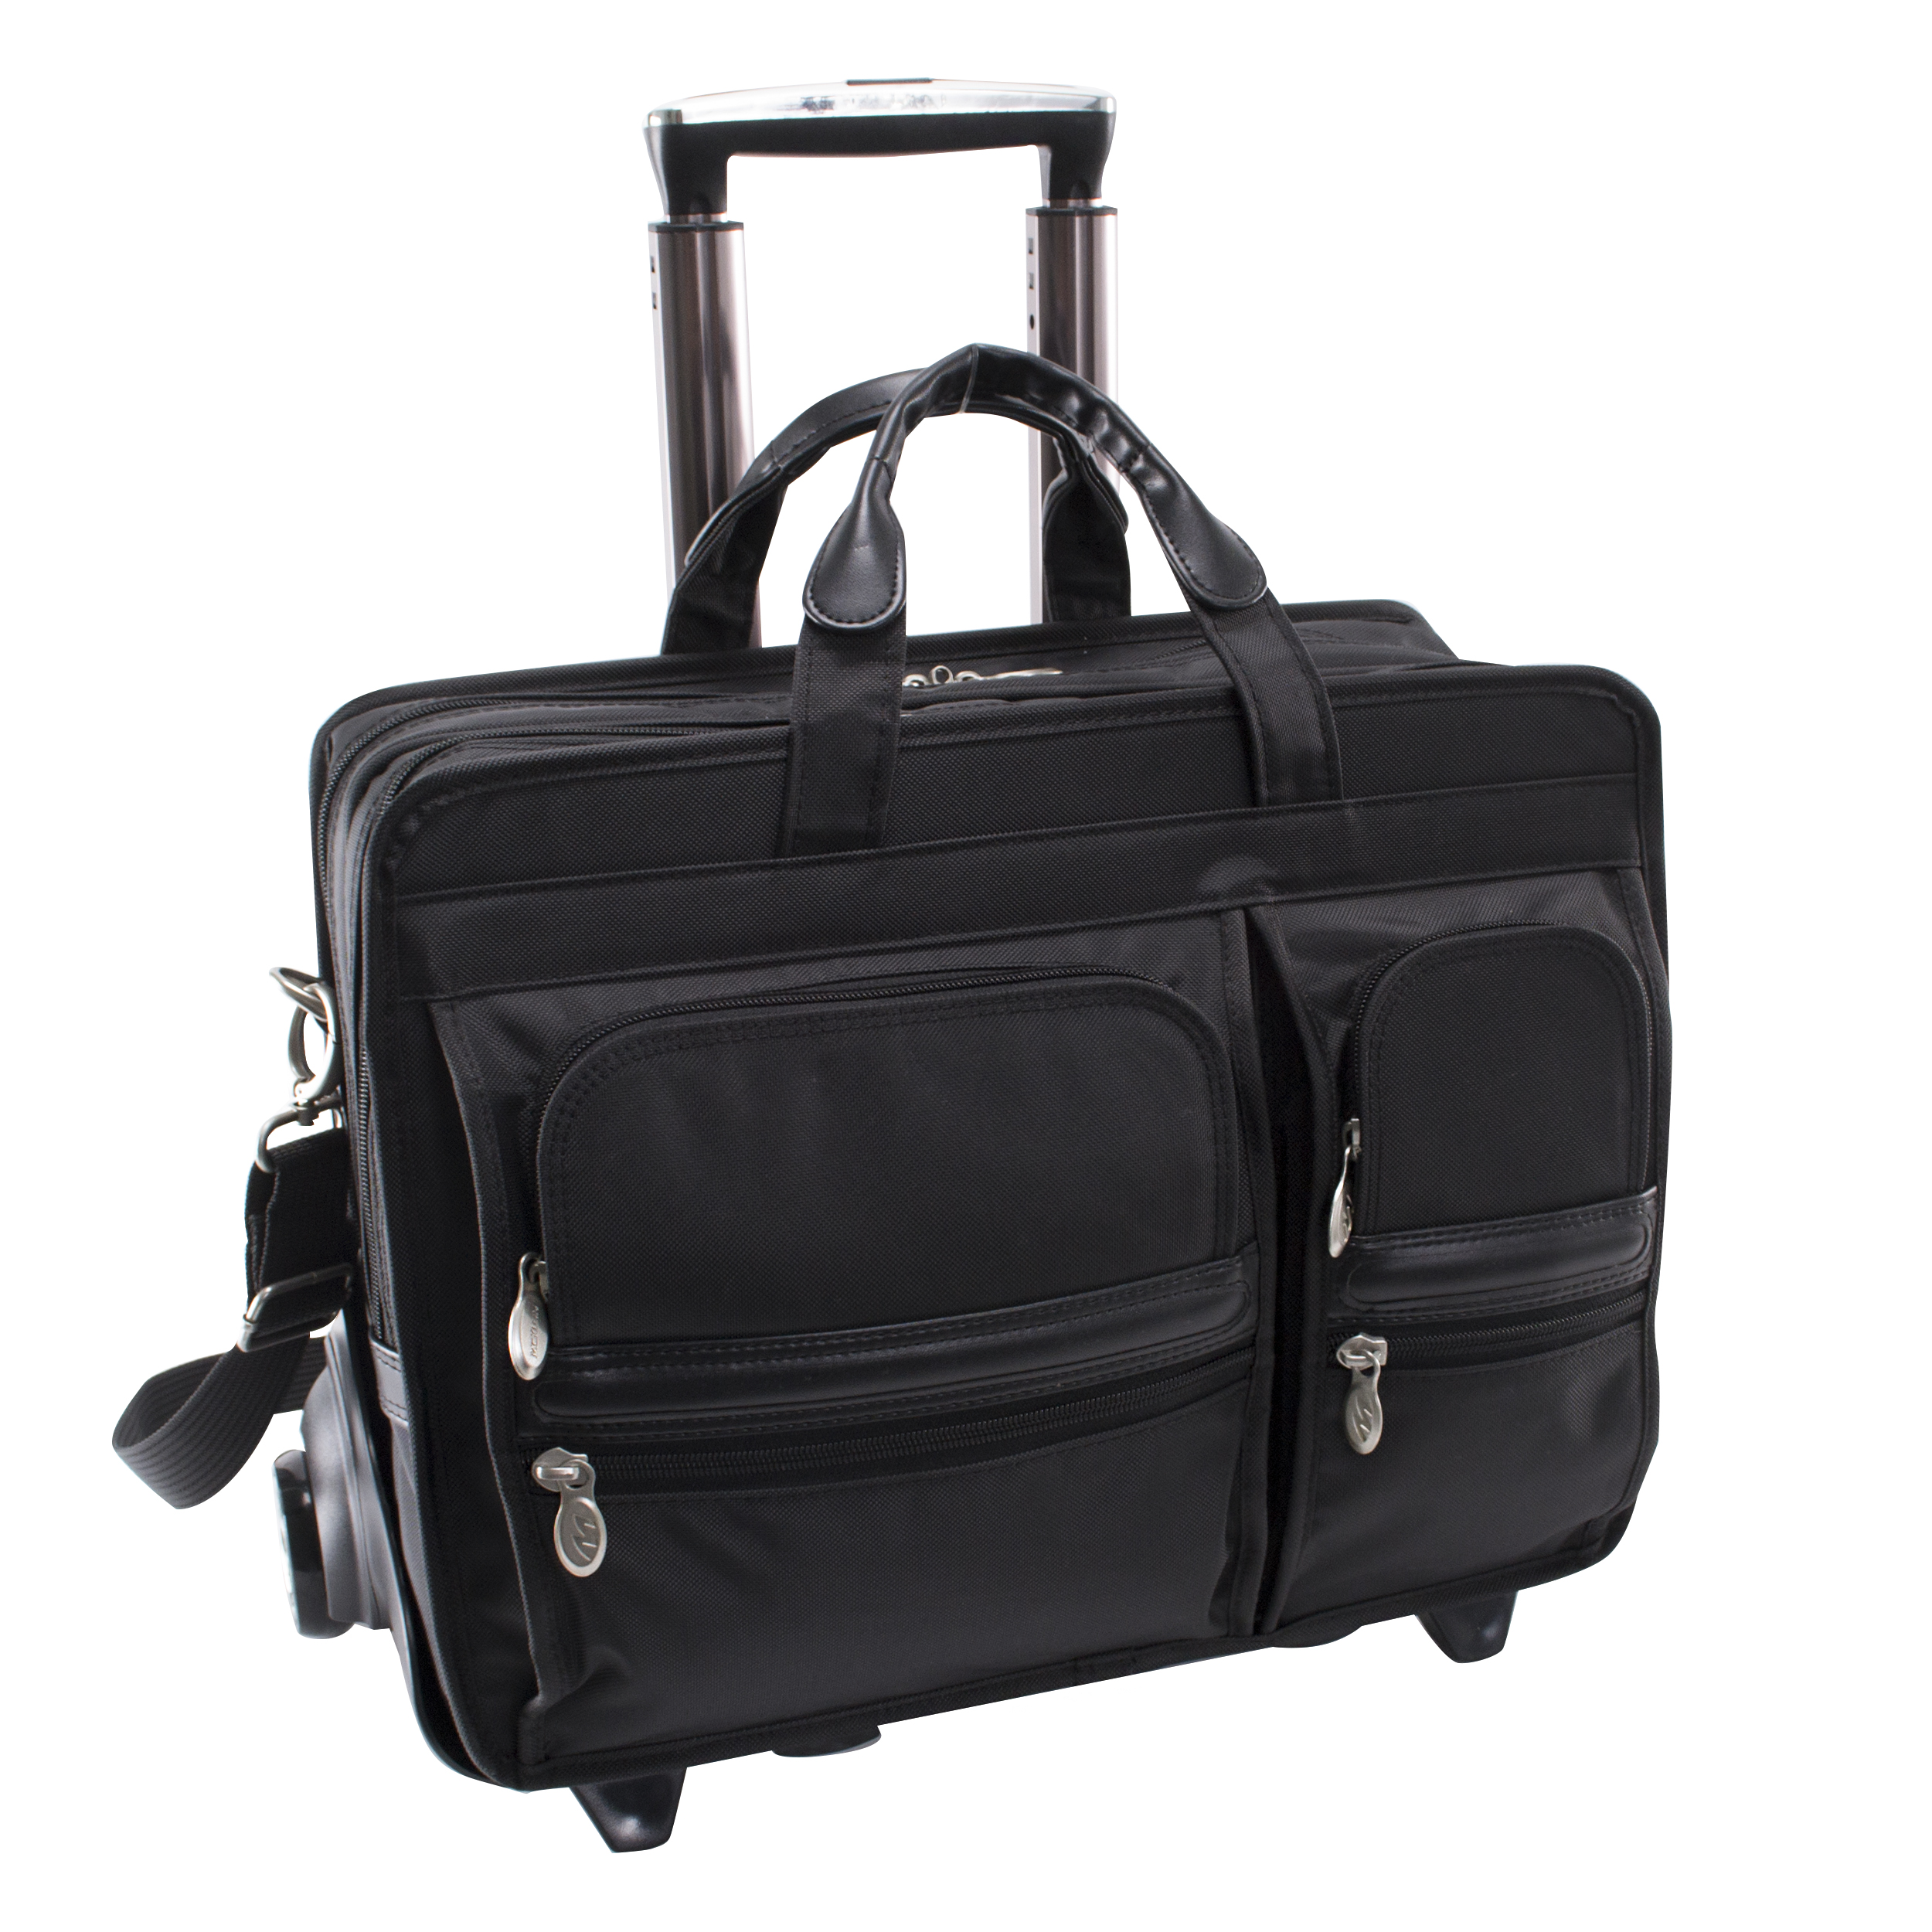 McKlein CLINTON, Nylon Patented Detachable -Wheeled Laptop Briefcase, Tech-Lite Ballistic Nylon, Black (58445)